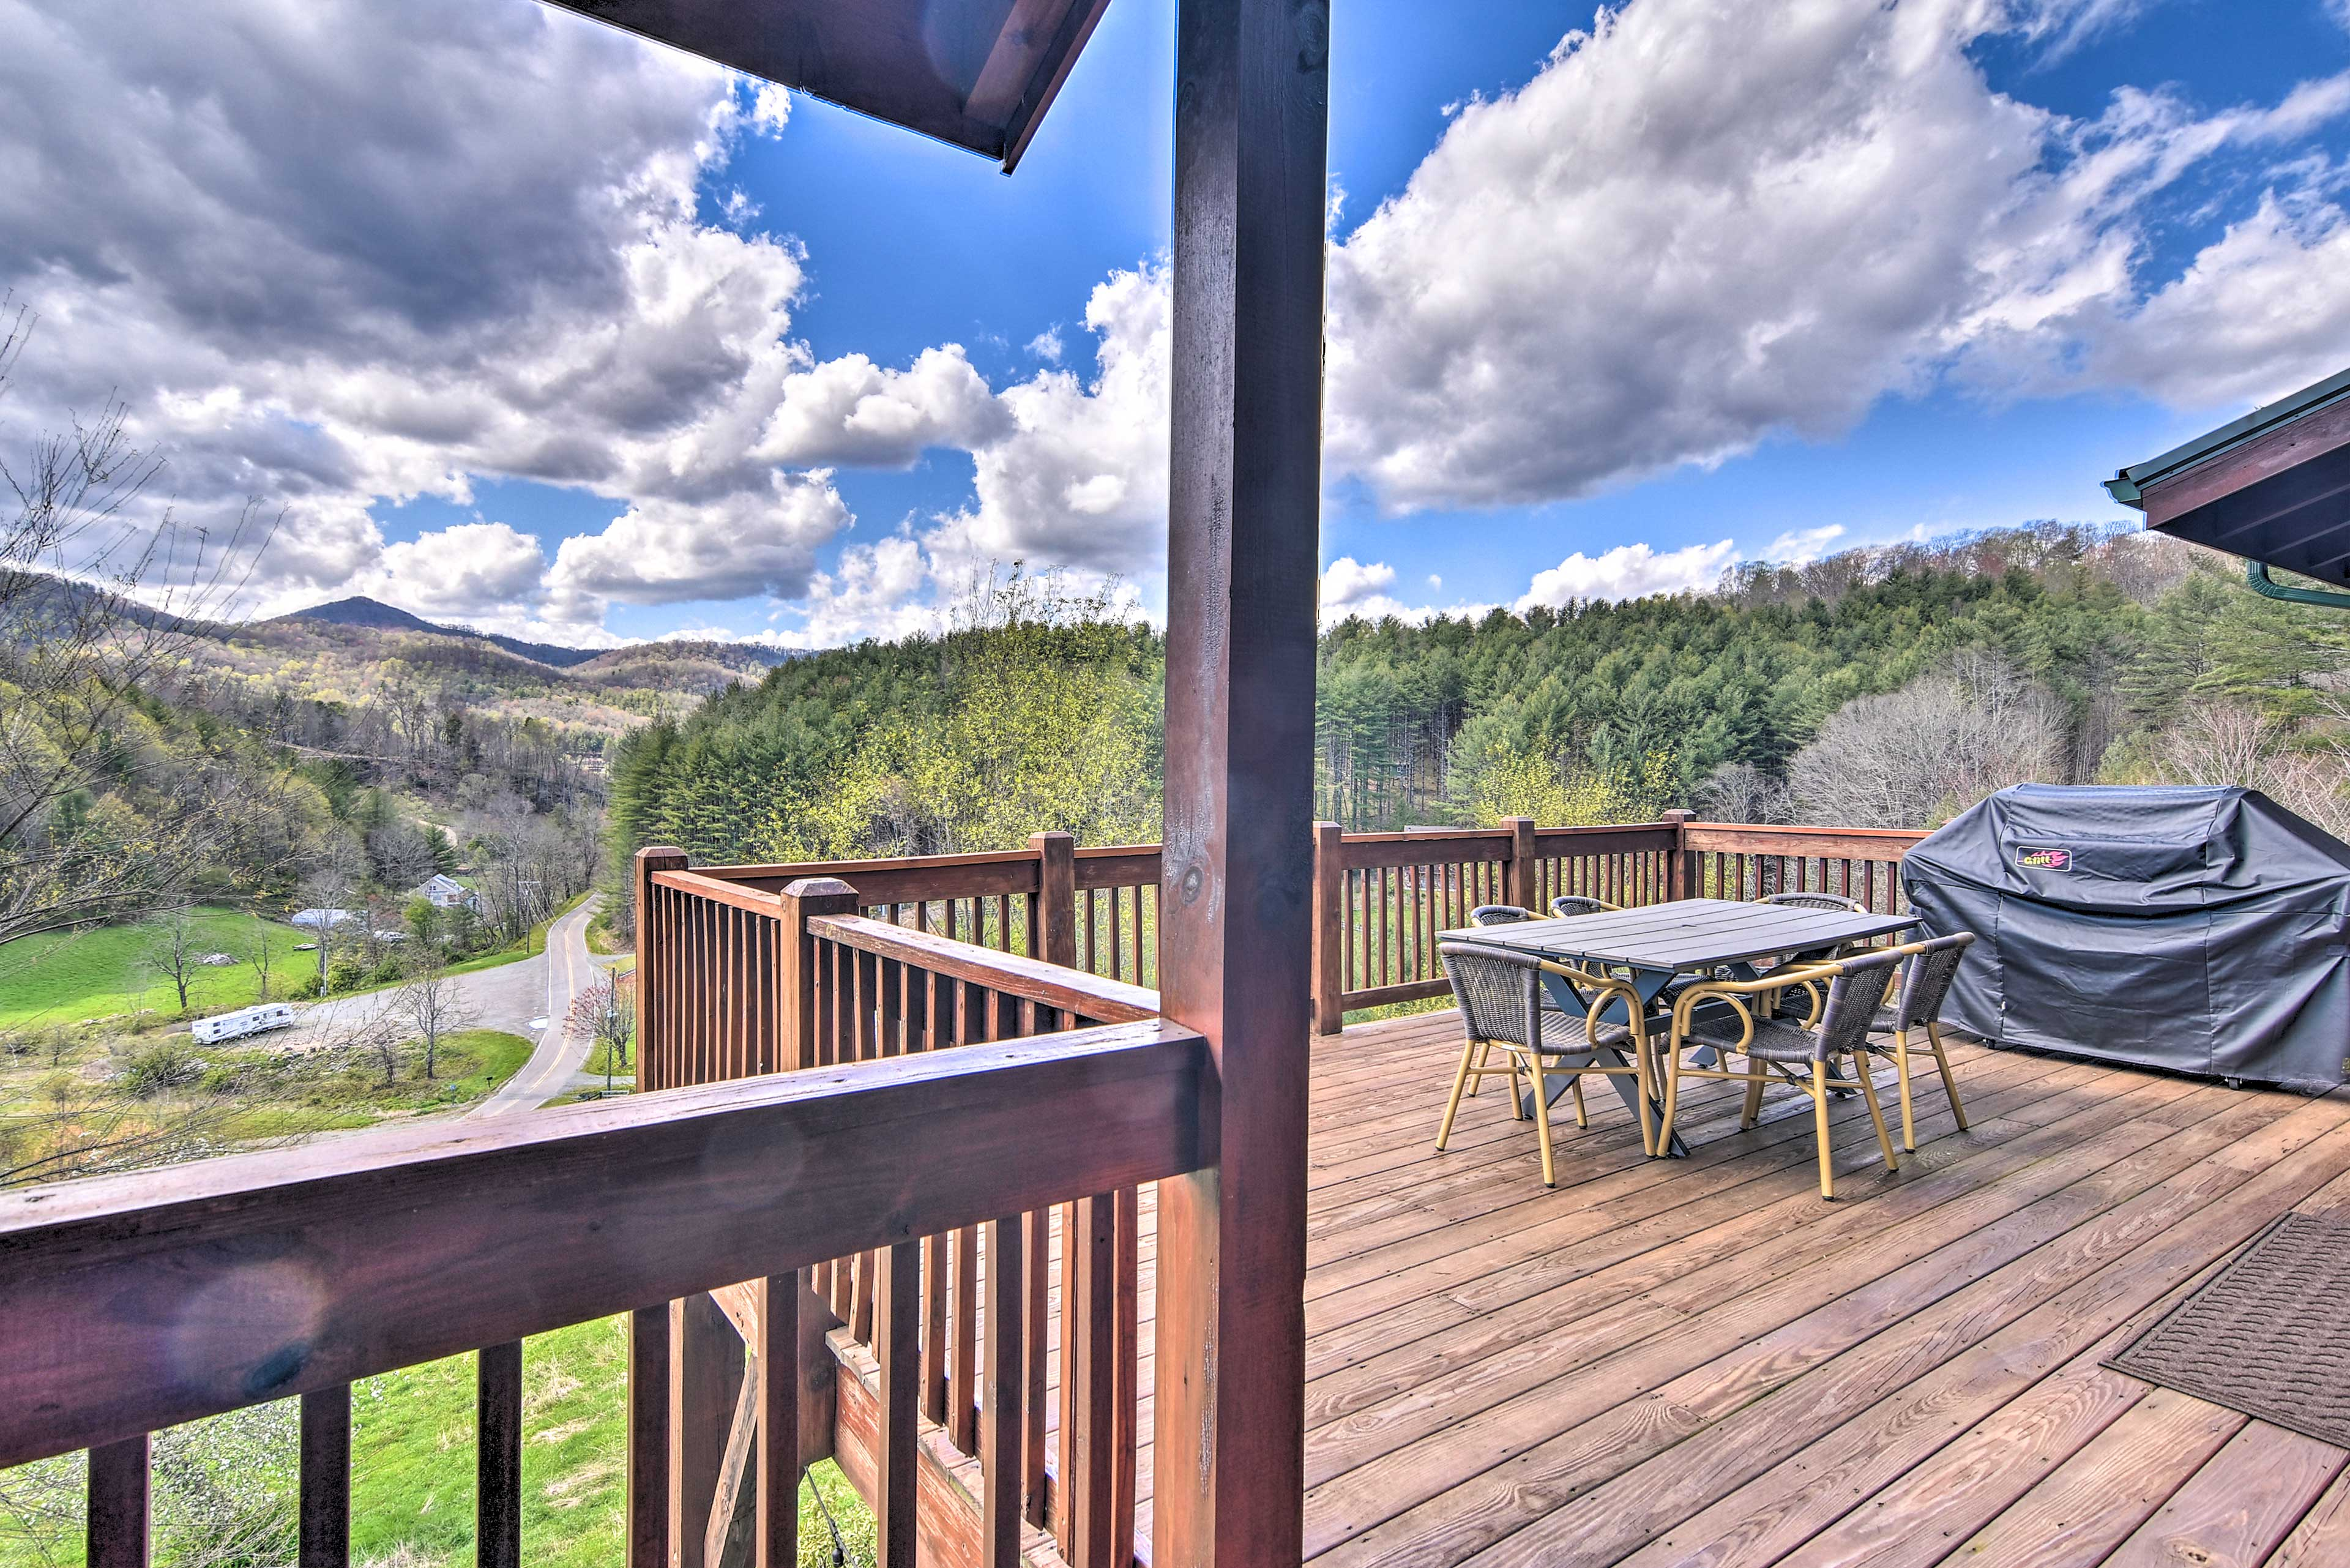 The spacious wraparound deck provides the perfect place to gather.